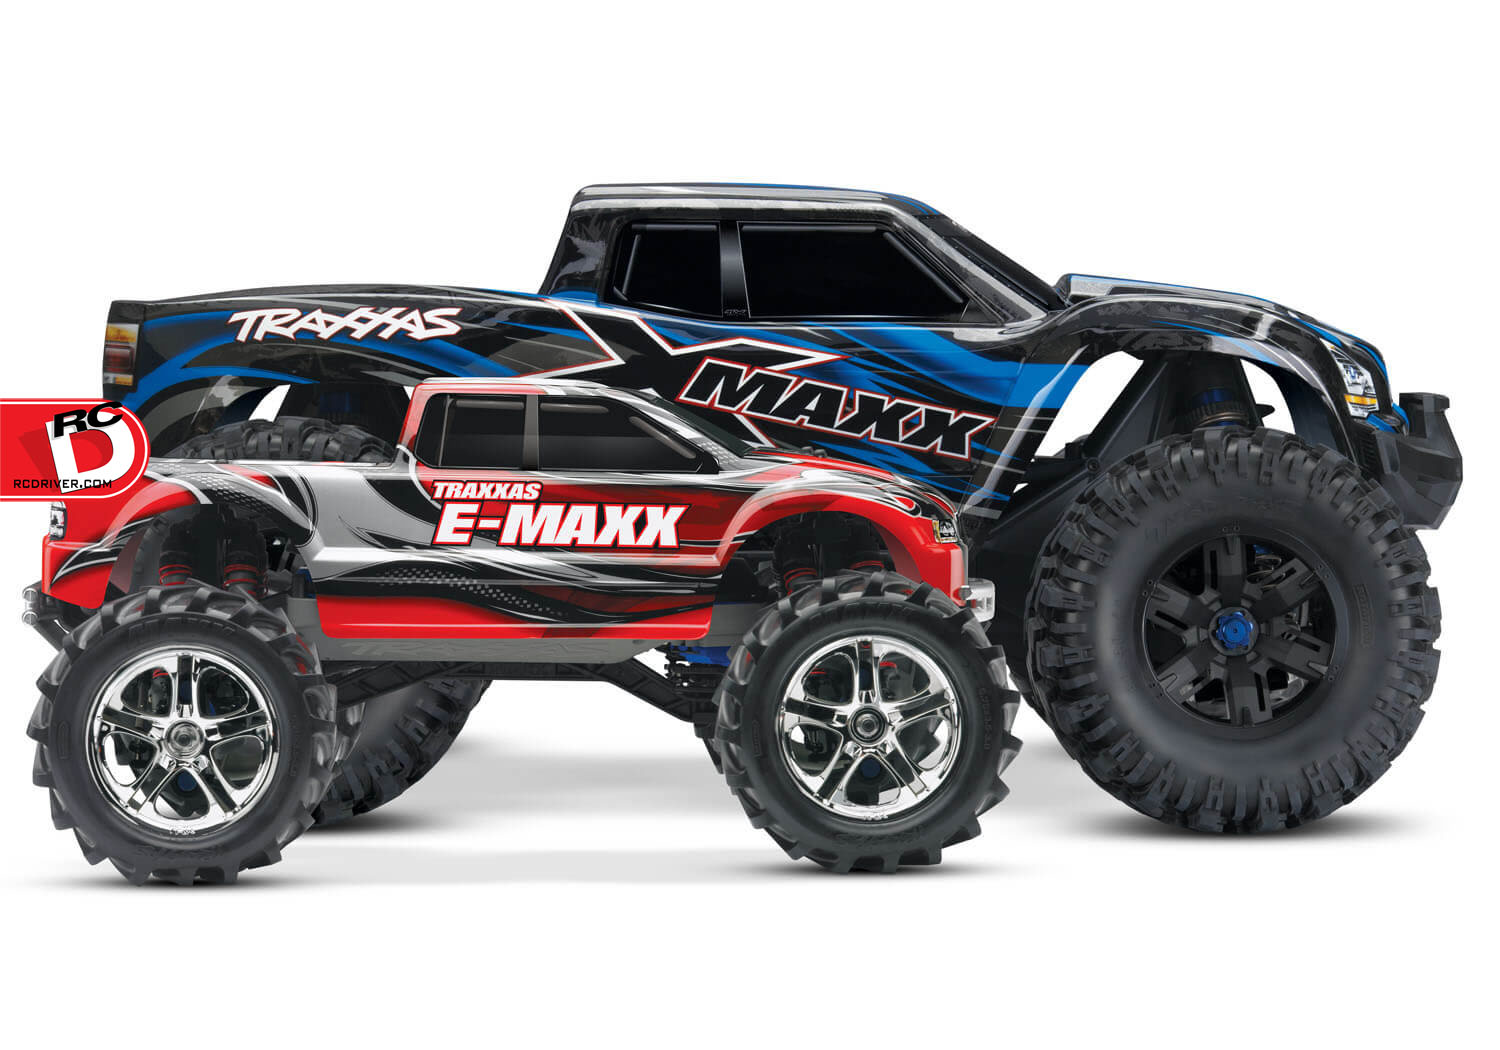 It's HUGH - The X-Maxx Electric Monster Truck from Traxxas